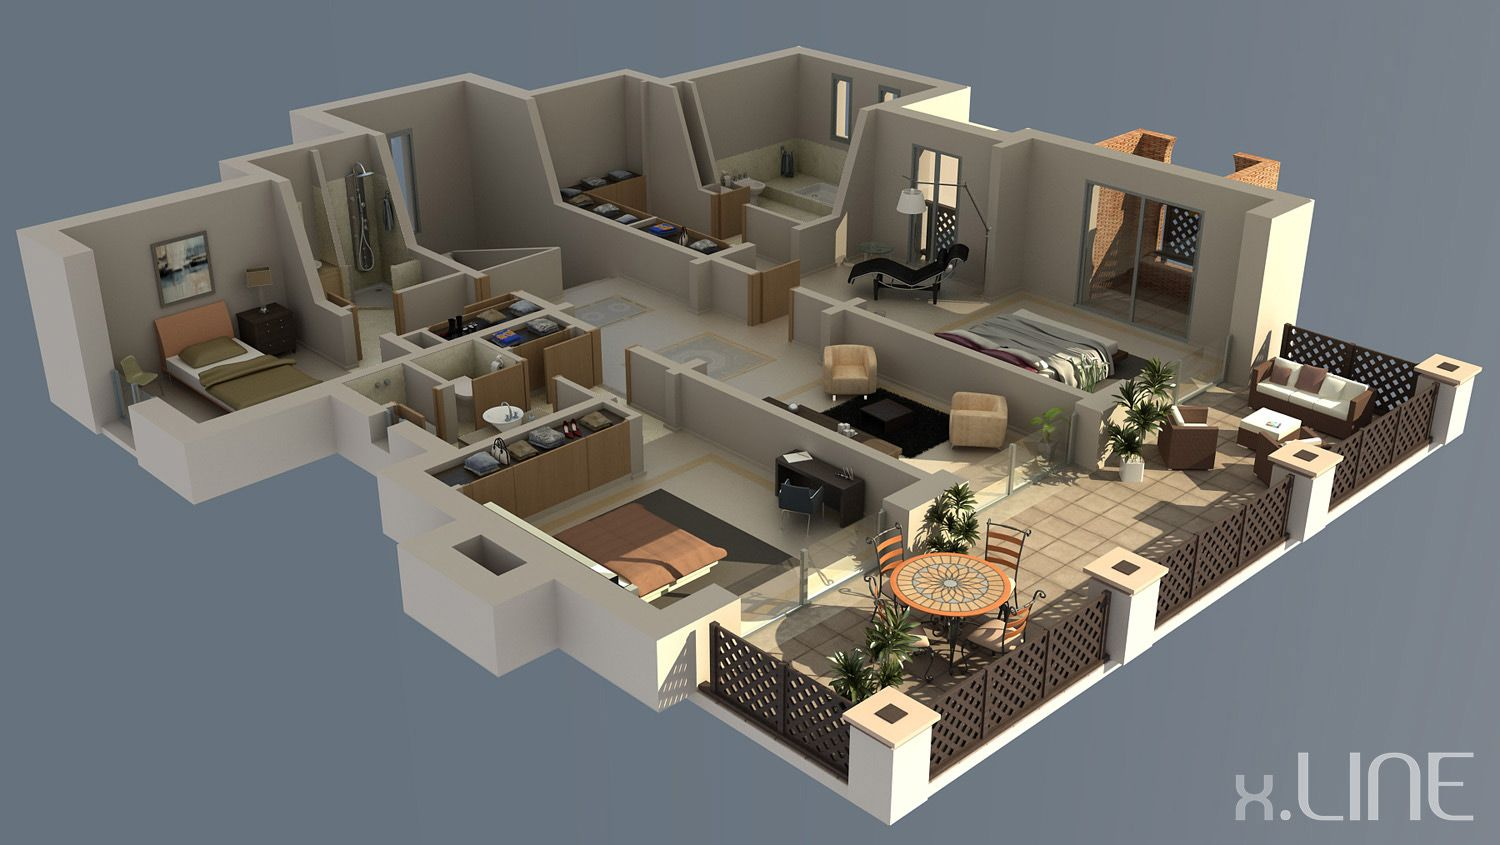 Pin by maria lynch on 3d house plans floor plans pinterest Architecture design house plans 3d